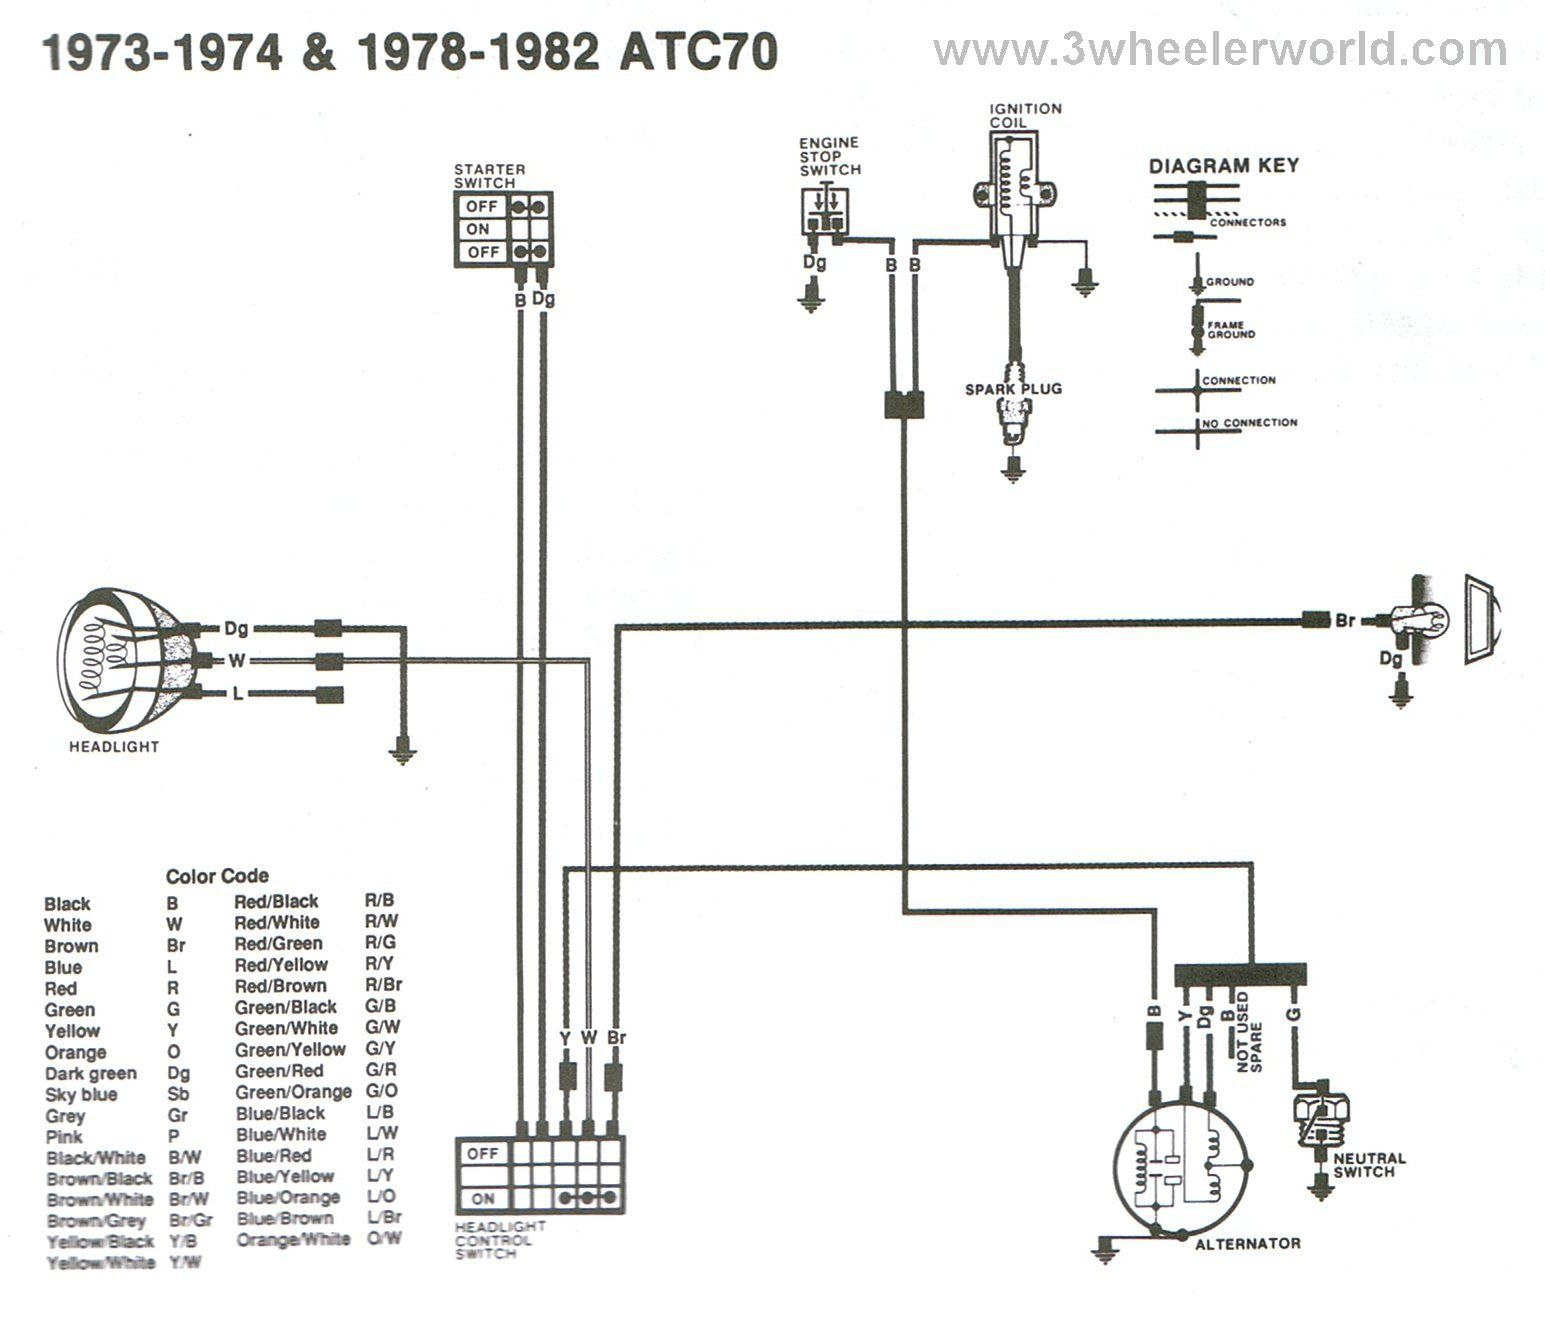 Atc 70 Wiring Diagram Honda Talk Dumont Dune Riders And | Dumont dunes,  Diagram, HondaPinterest